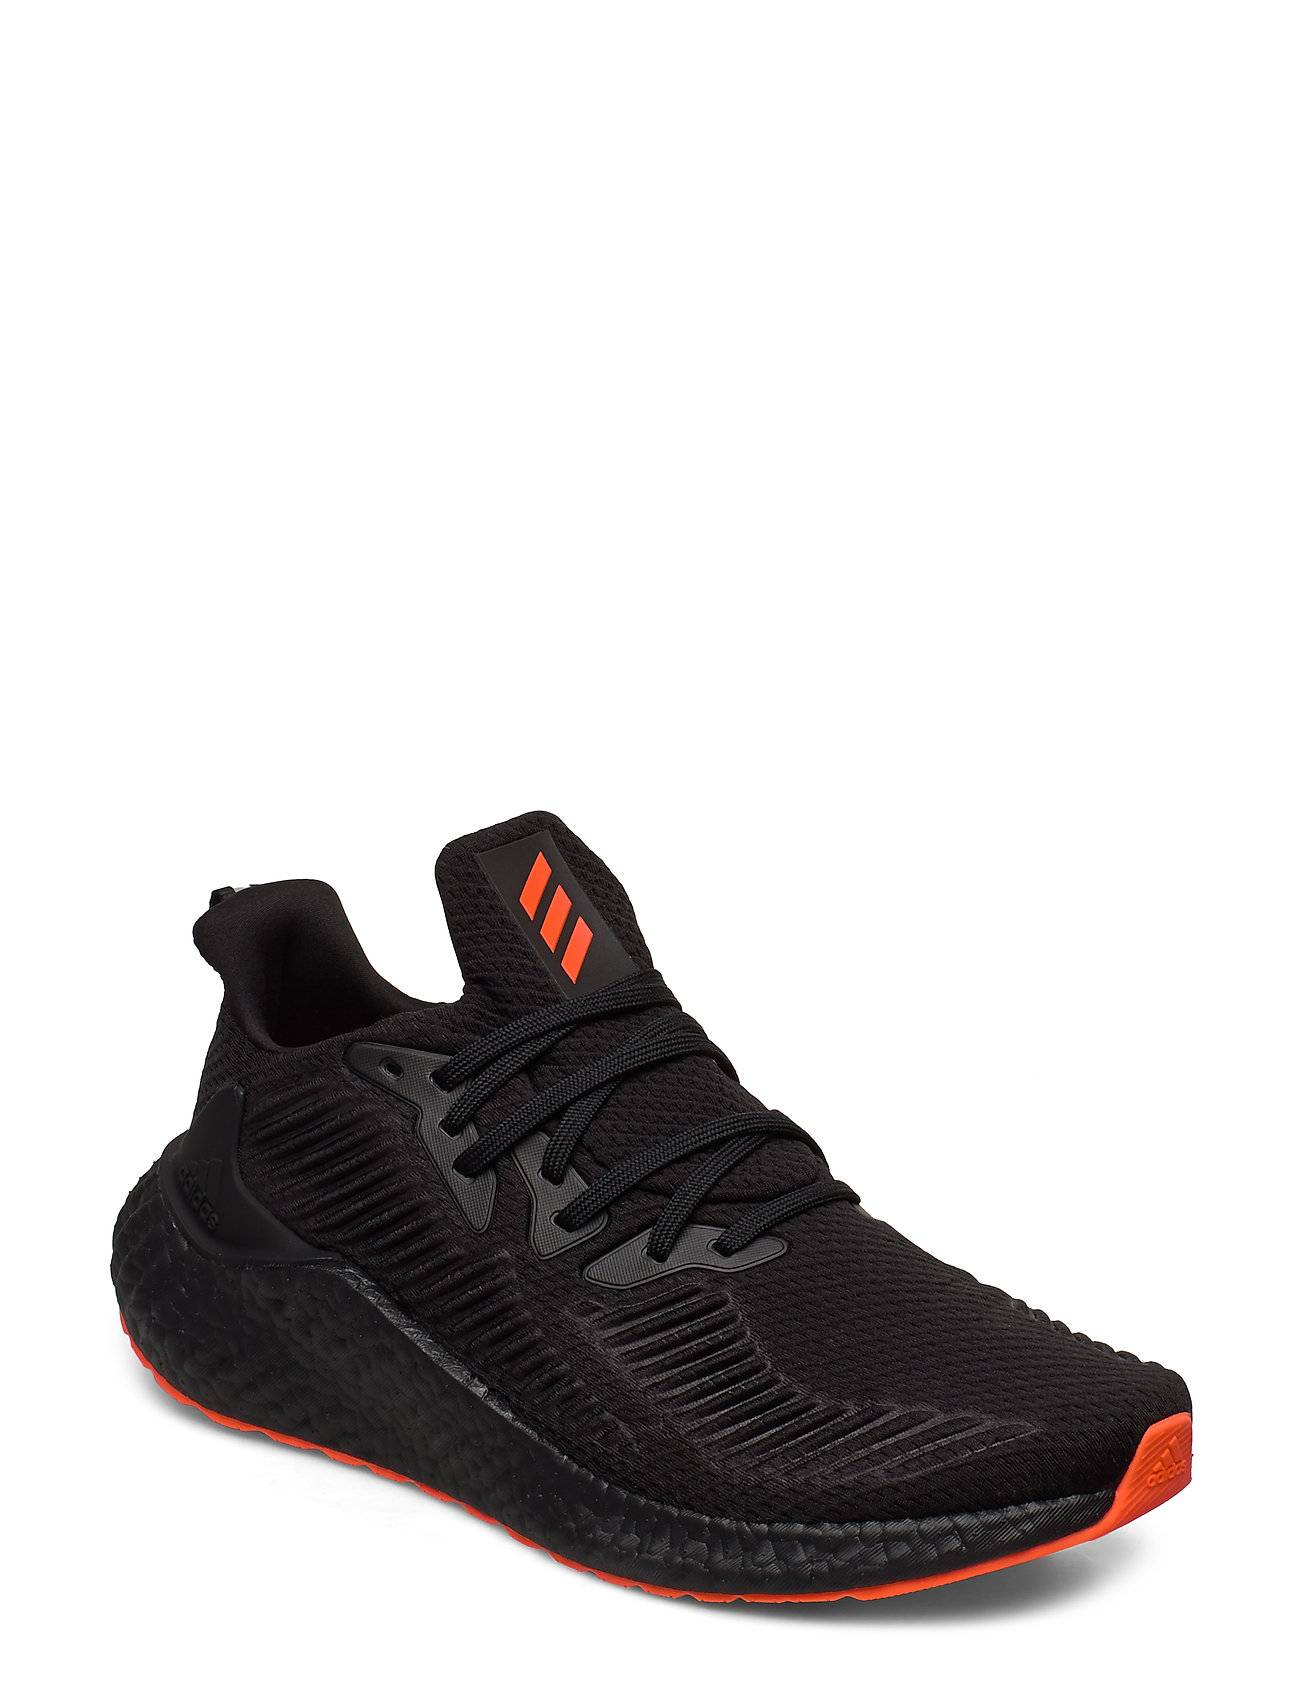 adidas Performance Alphaboost Shoes Sport Shoes Running Shoes Musta Adidas Performance